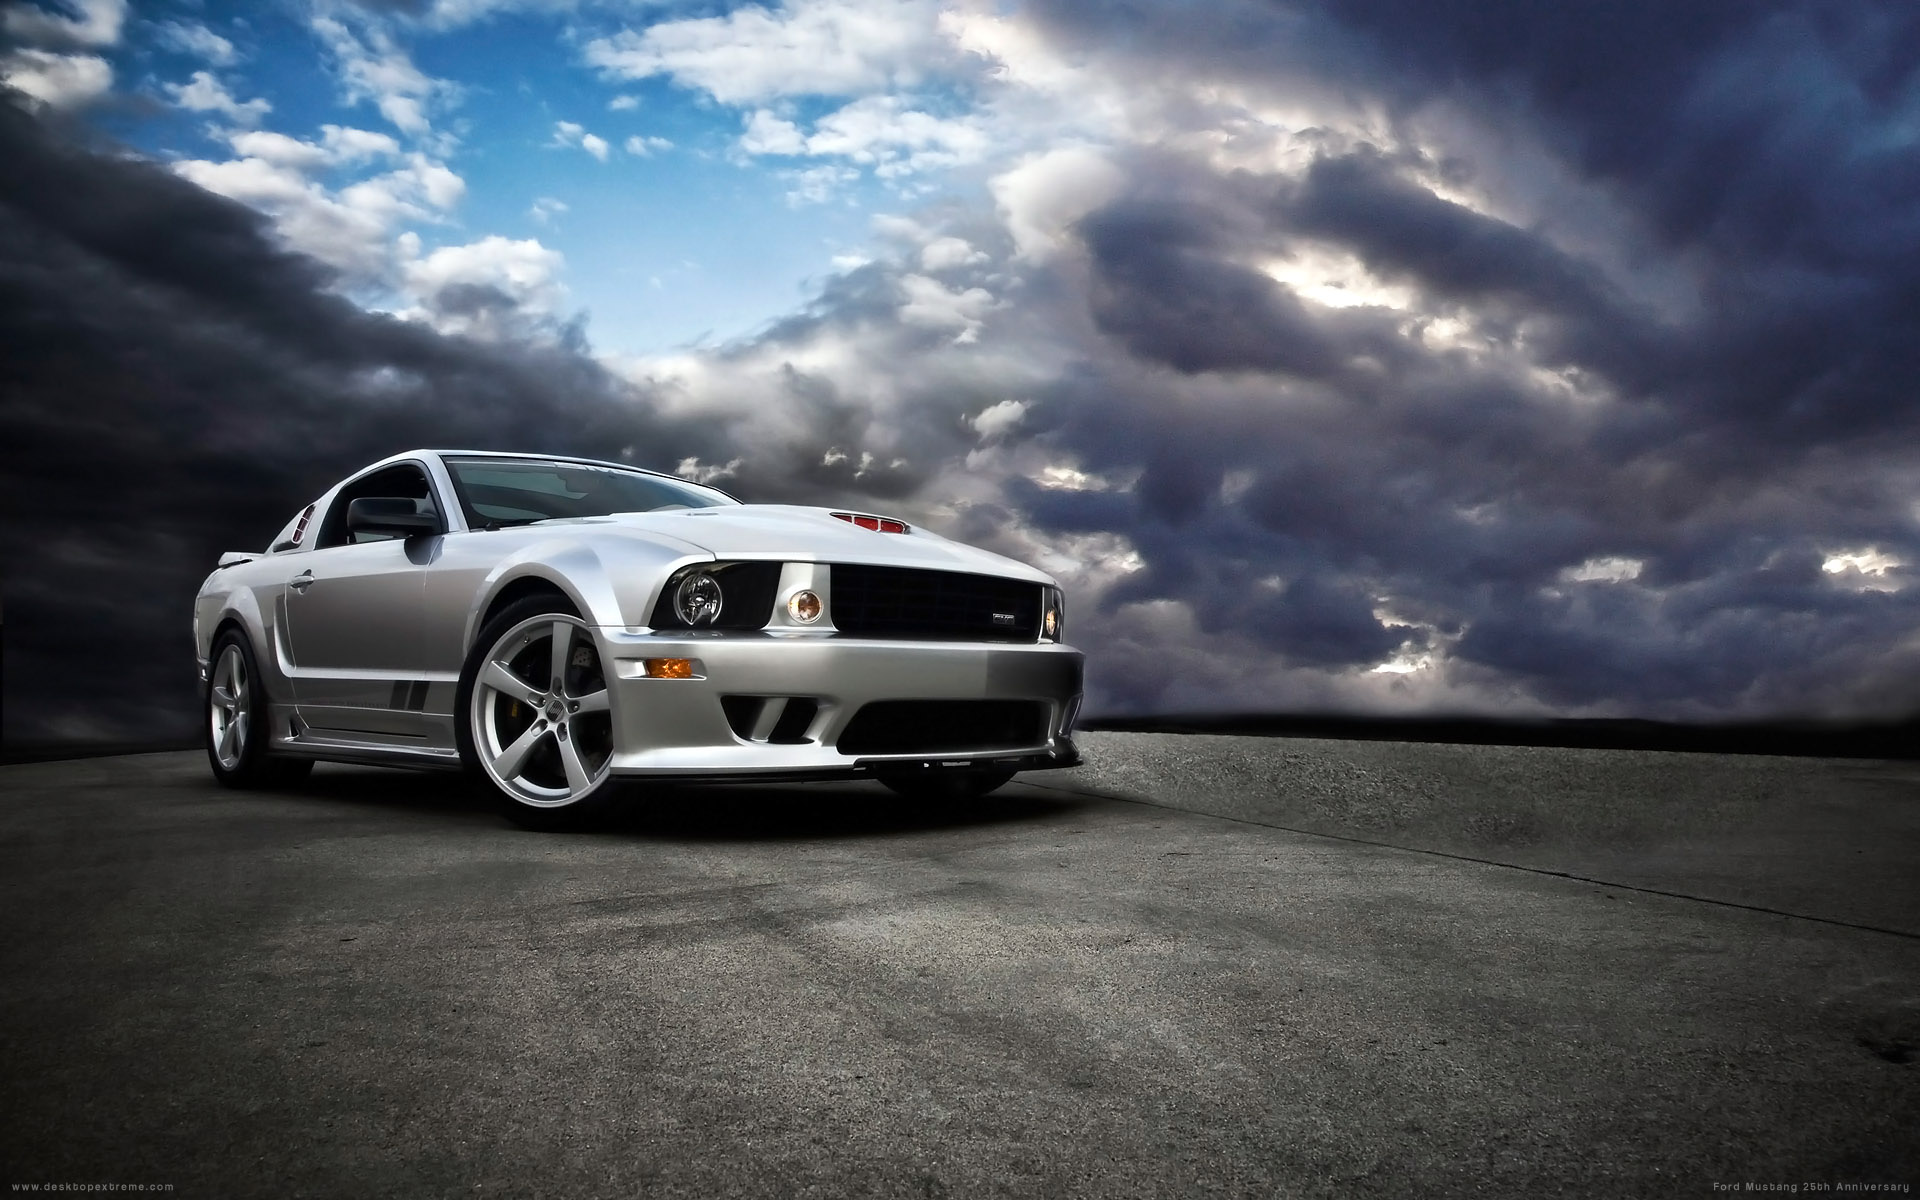 desktopextremecomphotosFord Mustang 25th Anniversary Widescreen 1920x1200